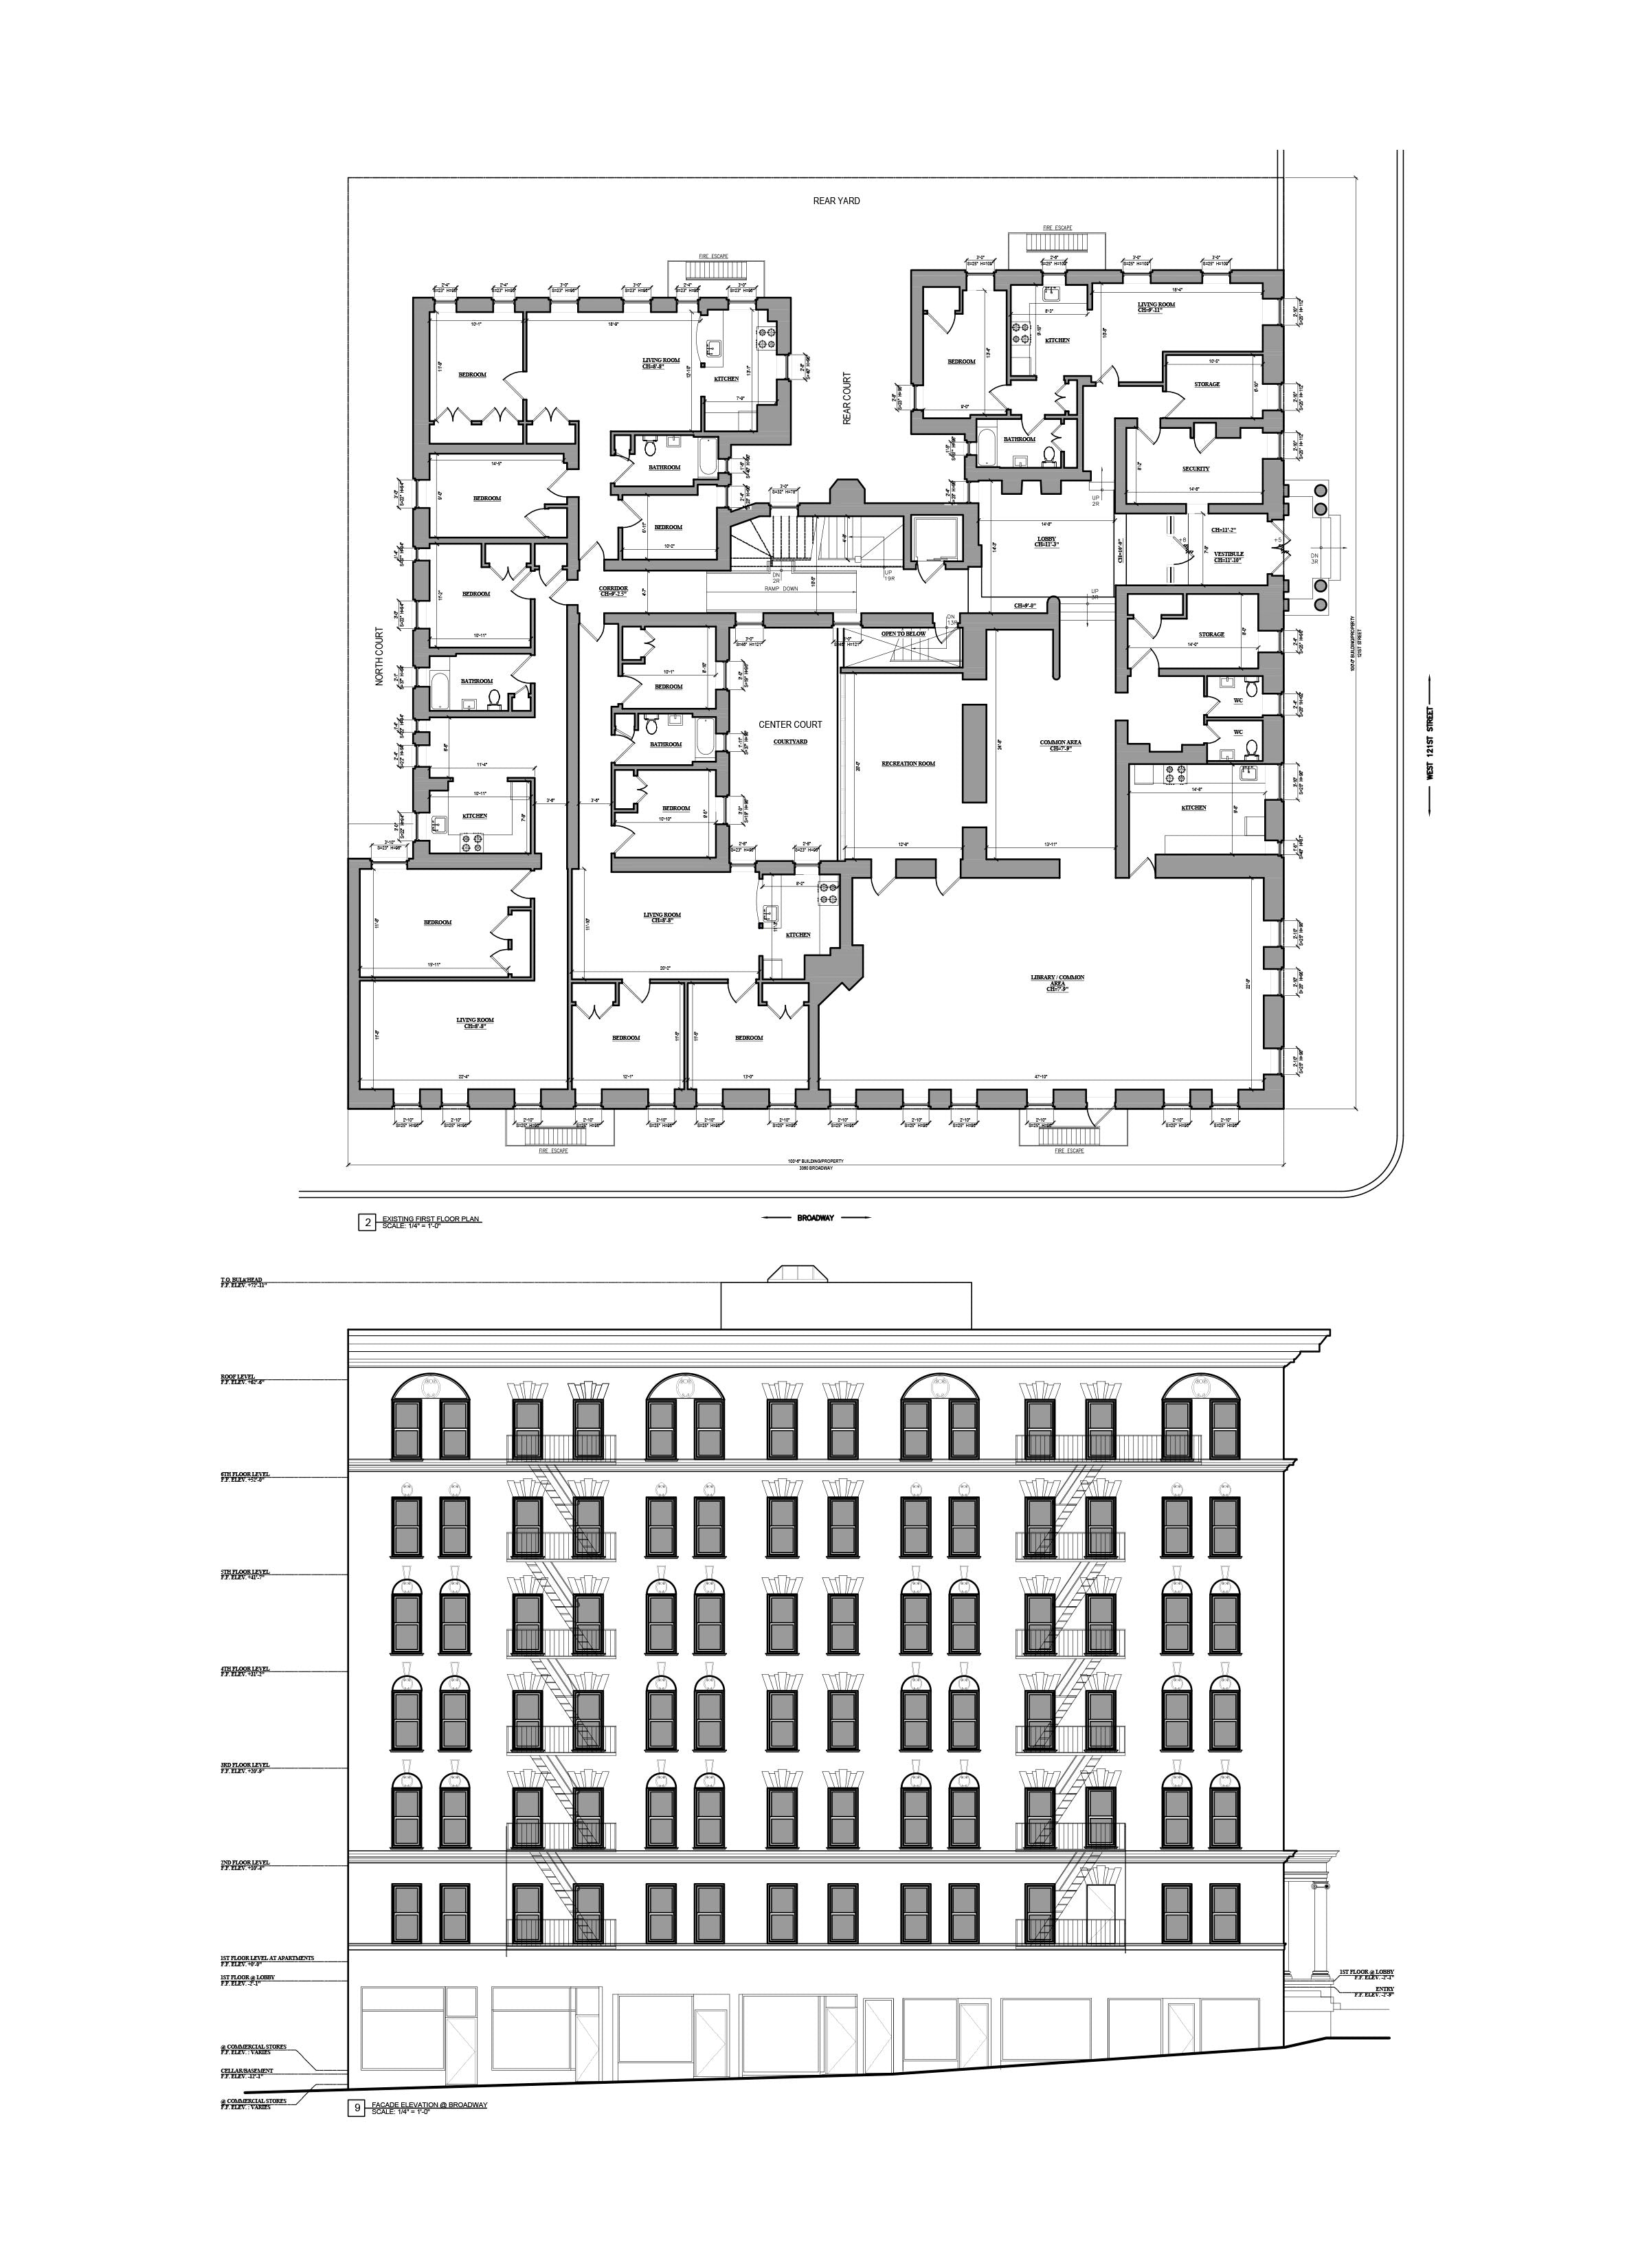 AutoCAD Drafting-As Built Drawings -Multifamily Building_Bronx, NY